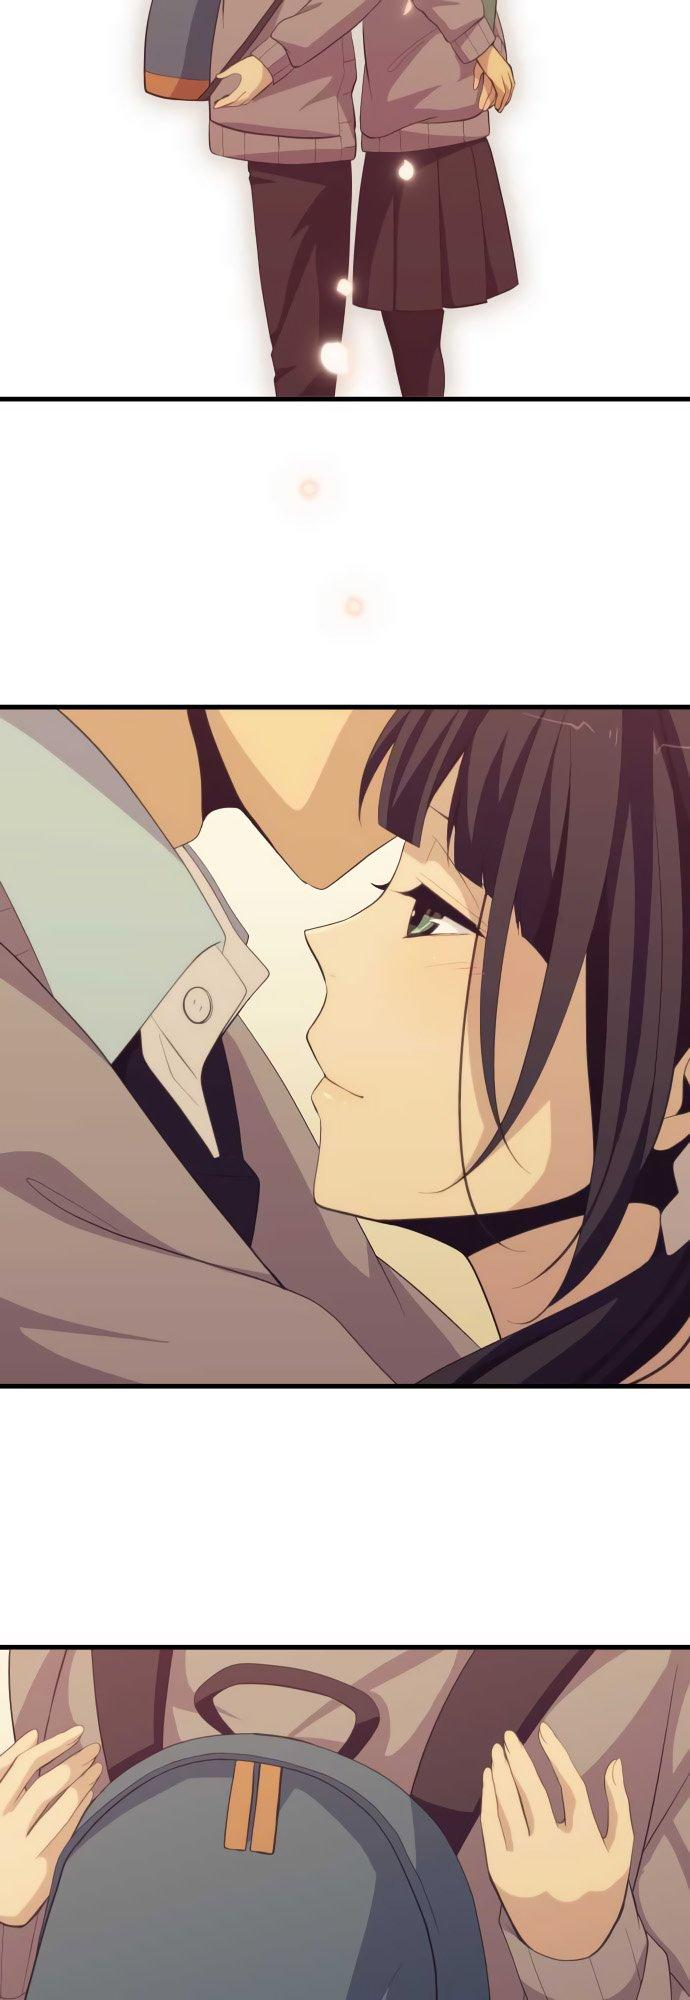 ReLIFE Chapter 213  Online Free Manga Read Image 5